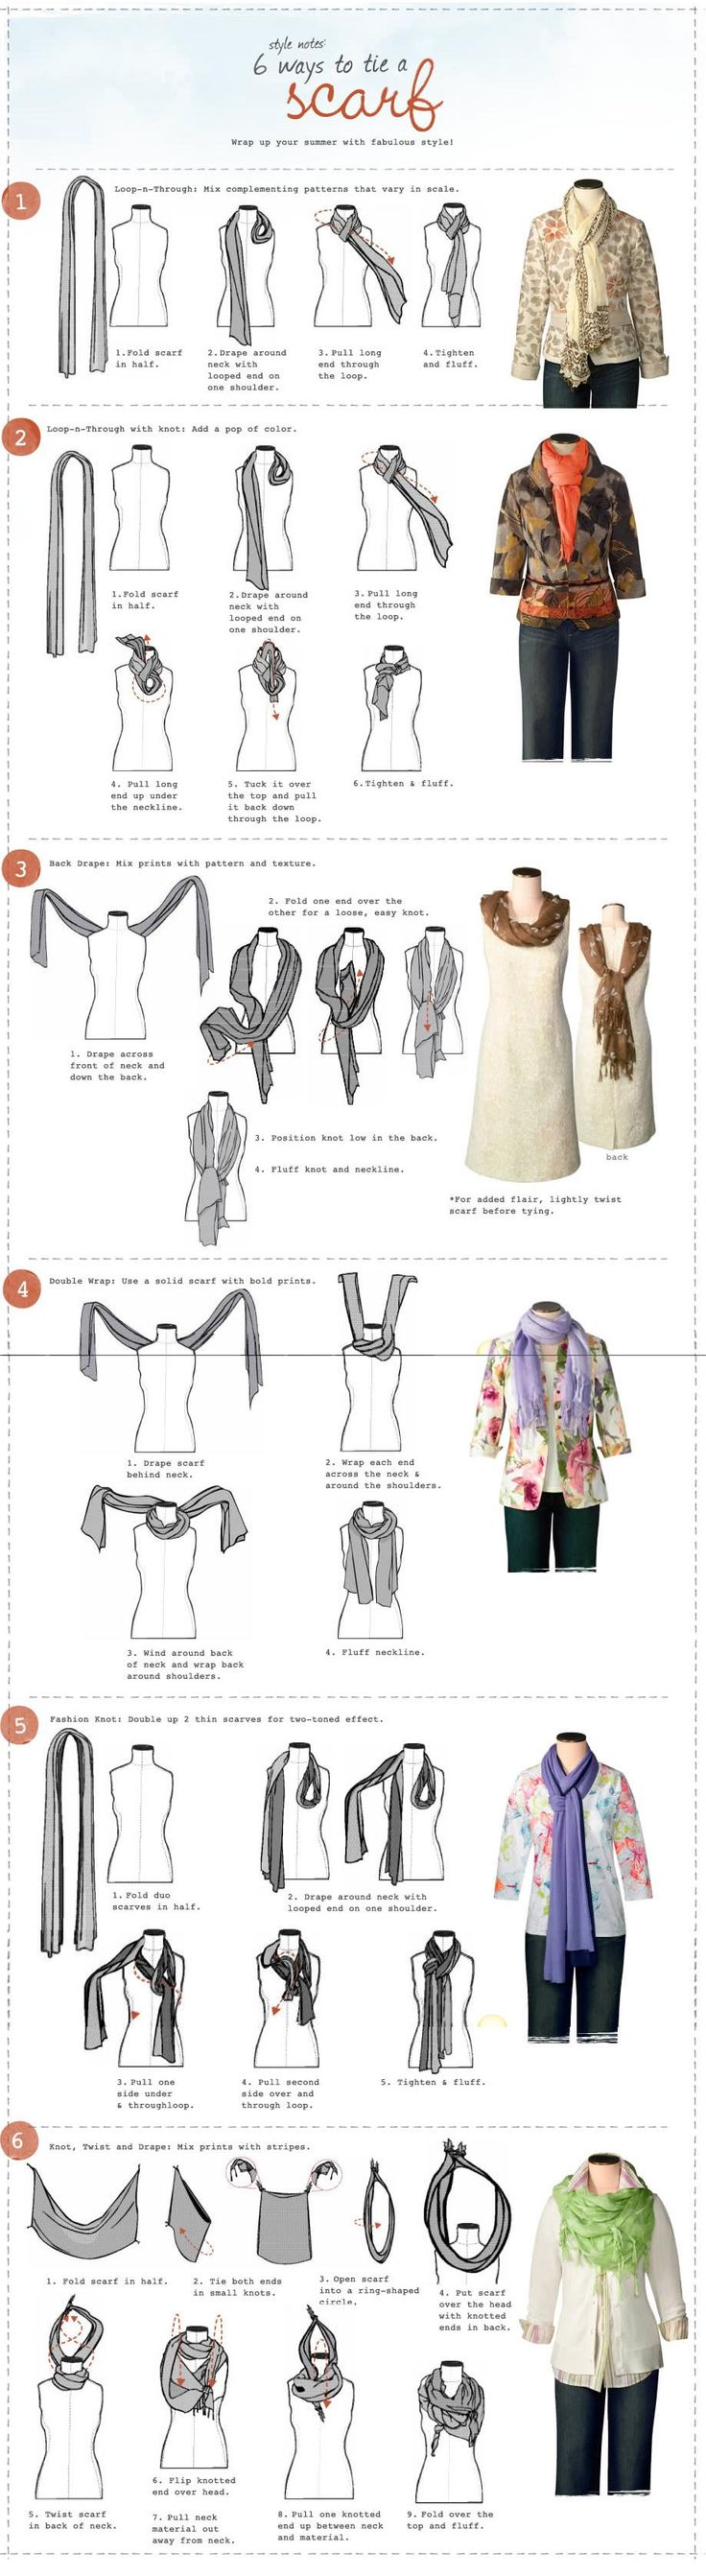 10 Tutorials Showing How To Tie A Scarf - Bead&Cord